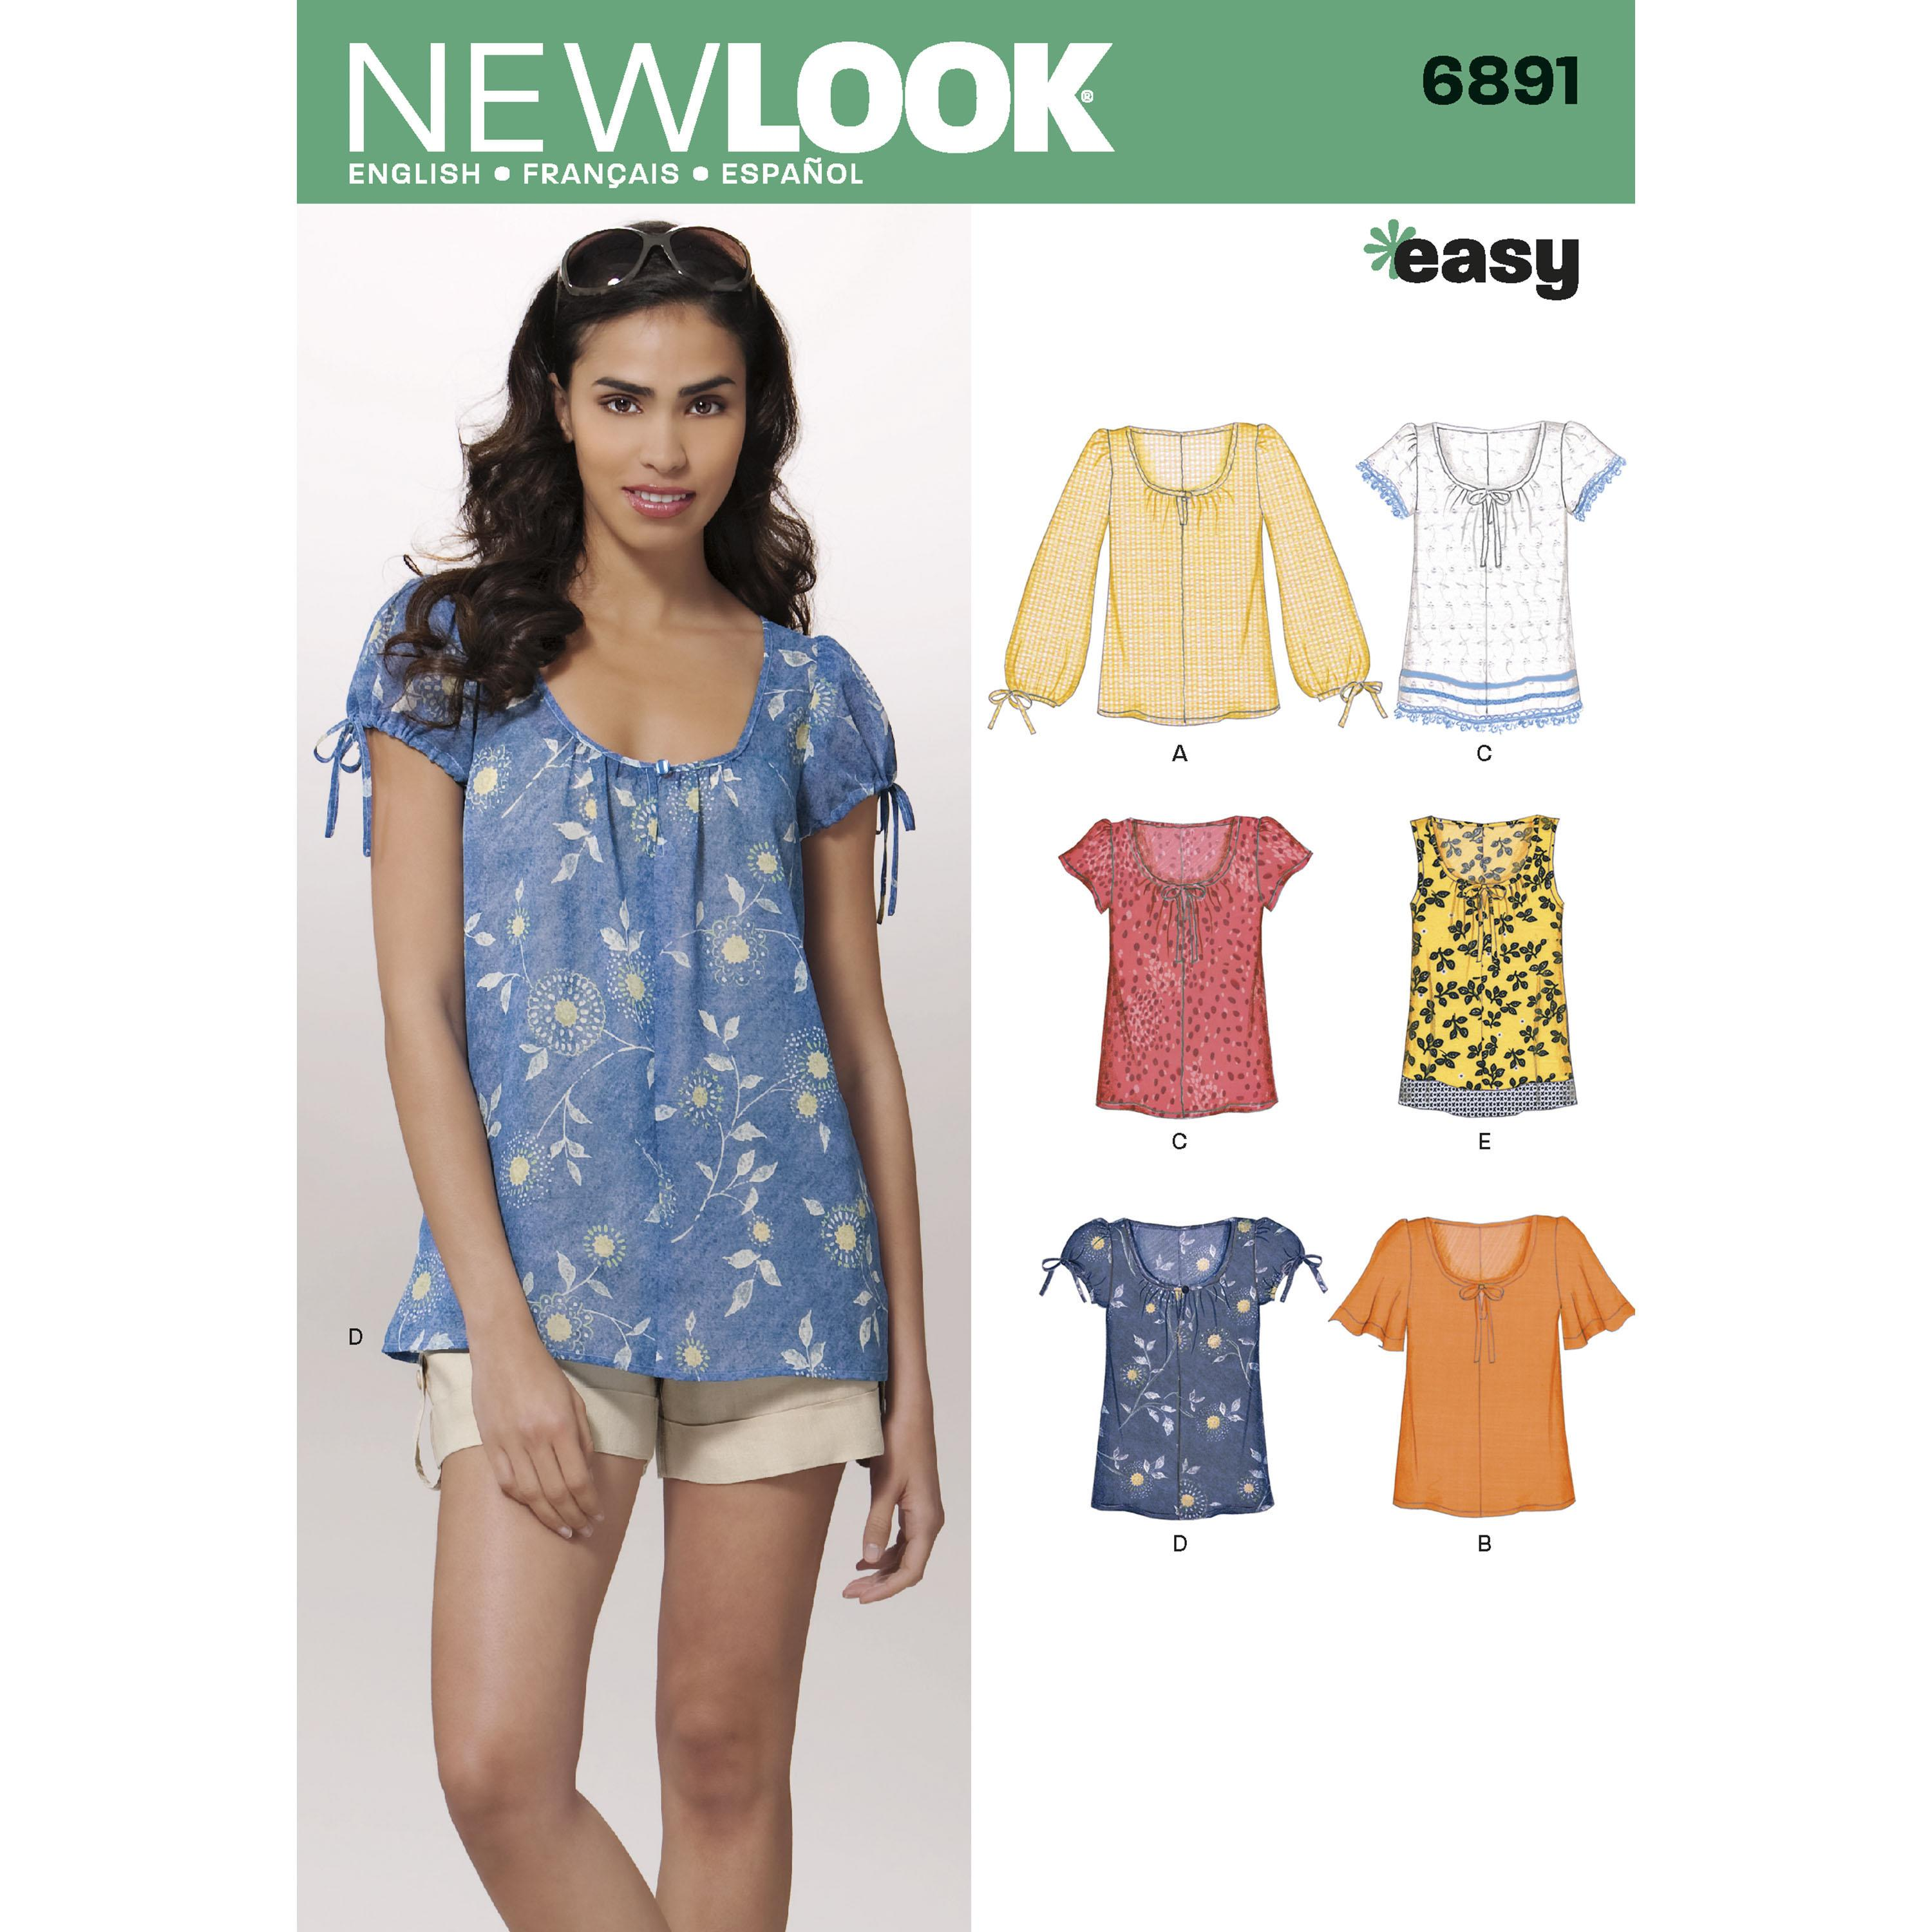 NewLook N6891 Misses Tops